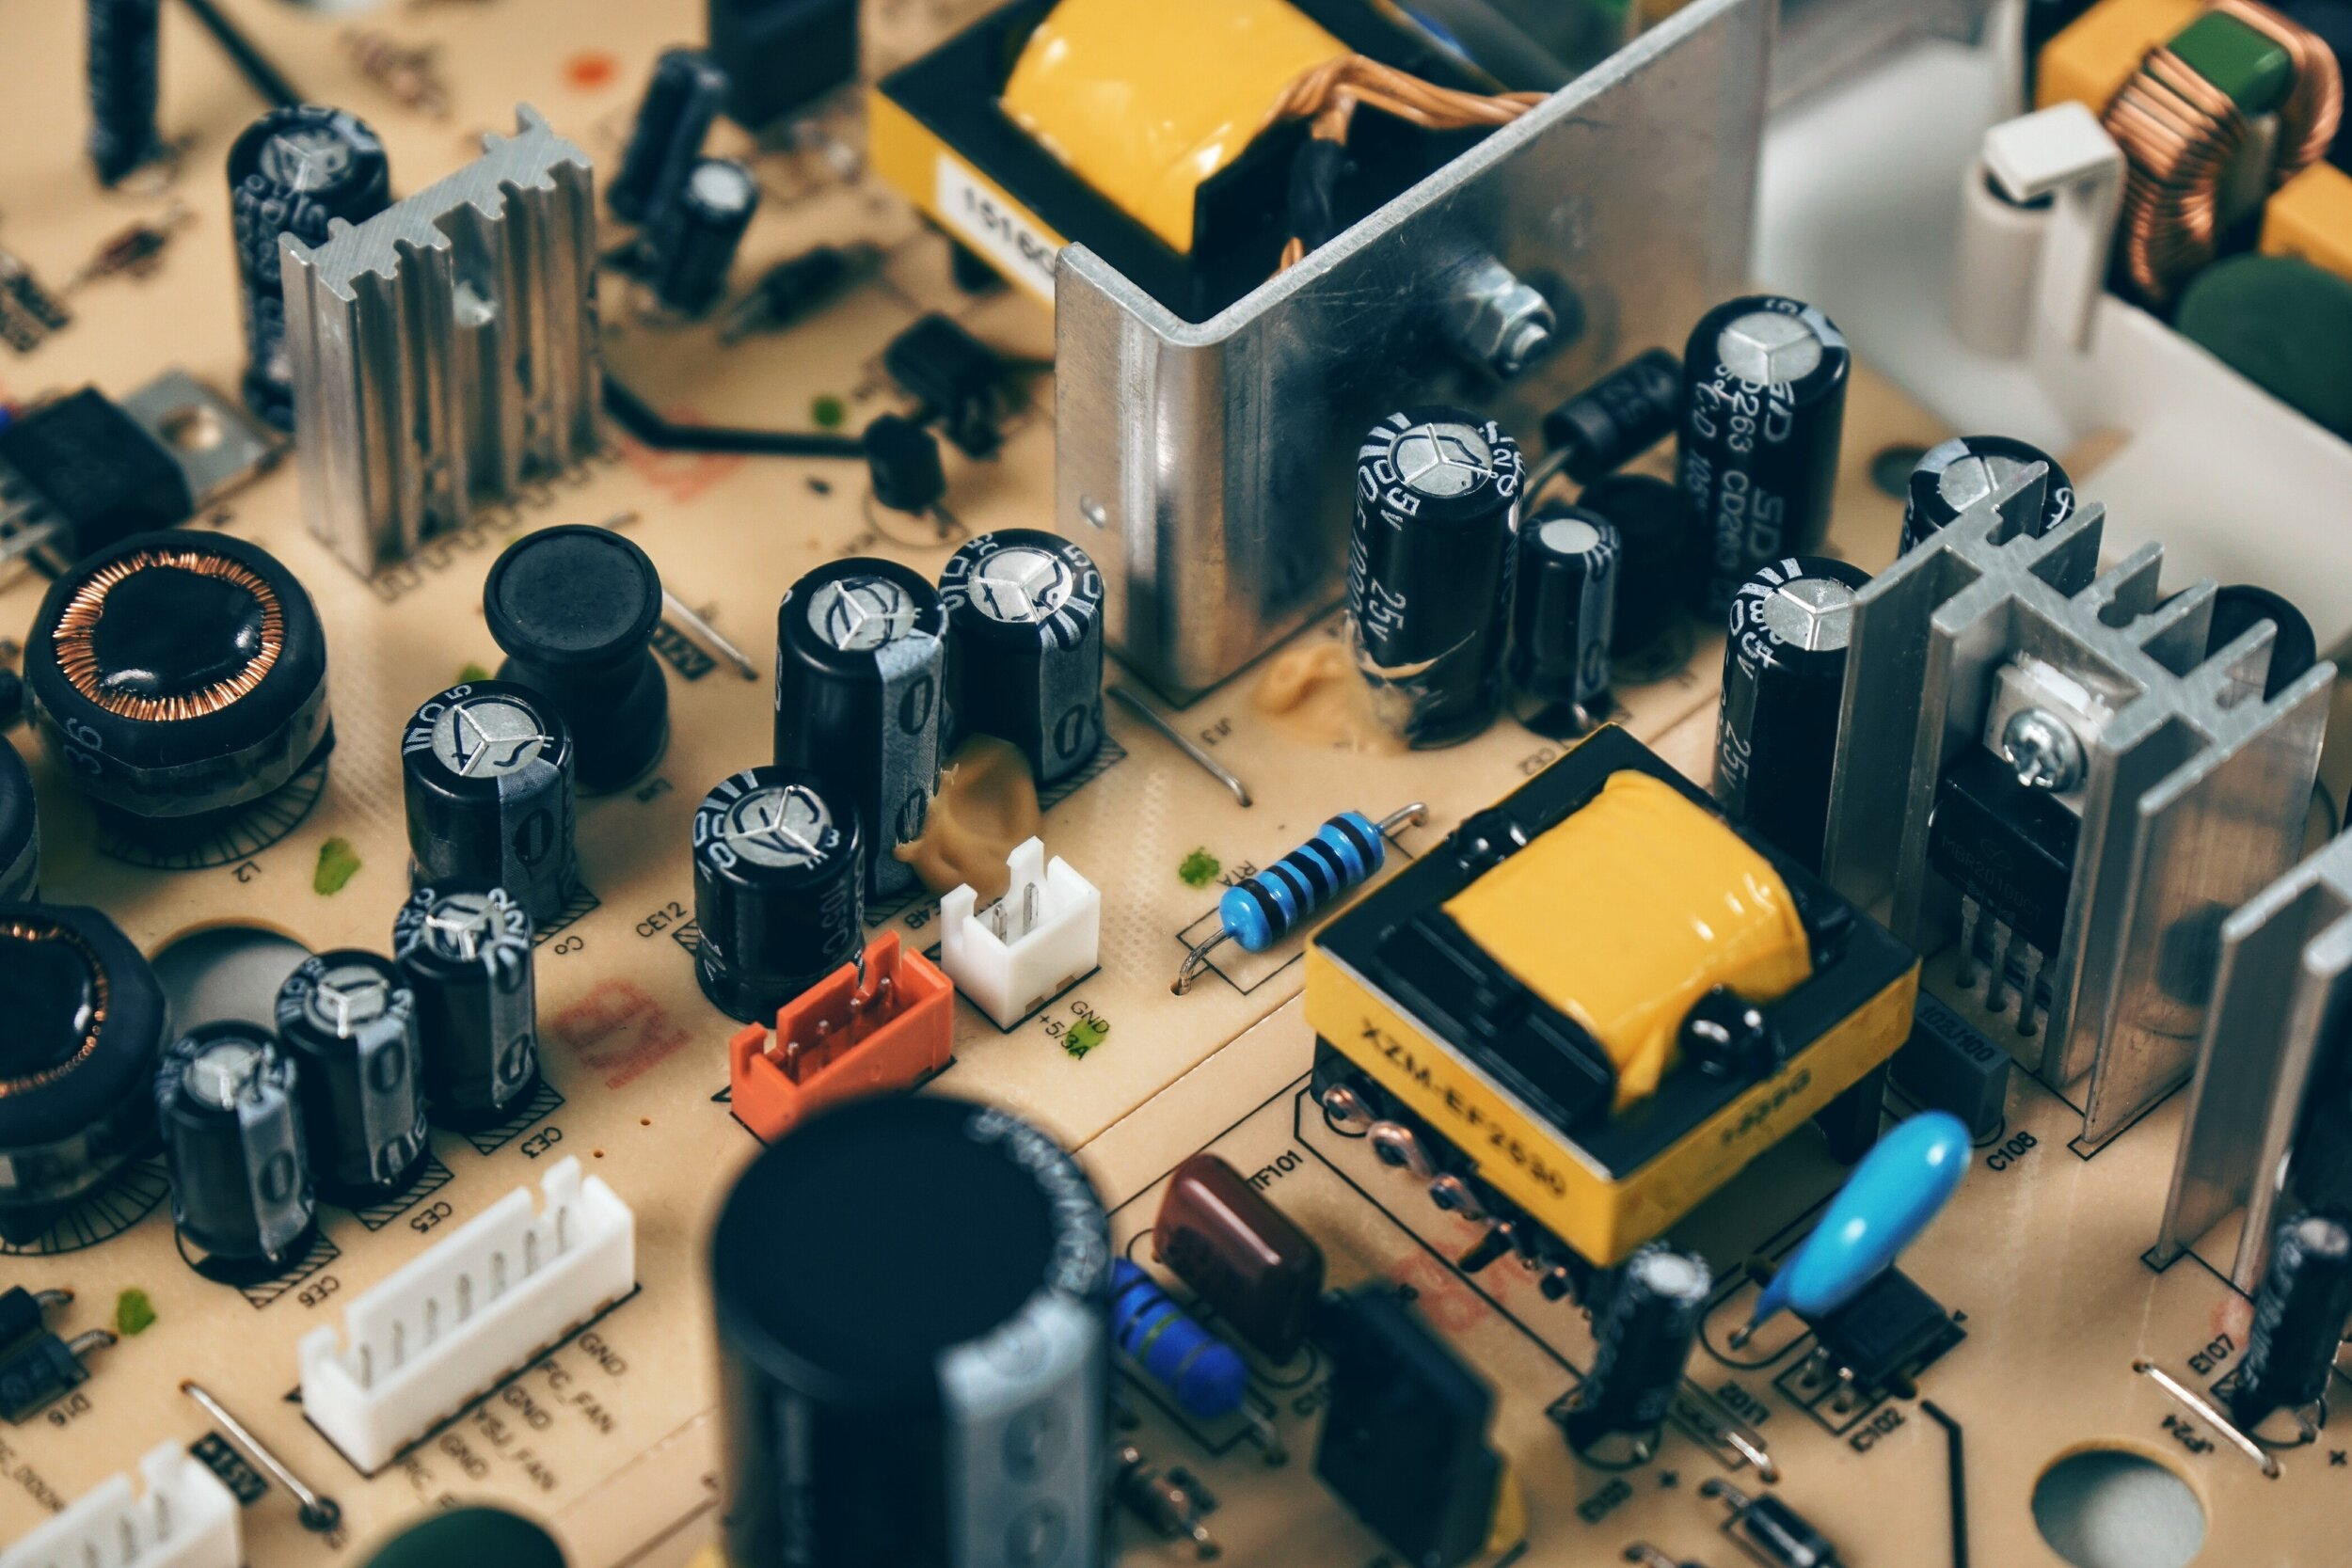 CAPACITORS, POWER SUPPLY, TRANSMISSIONS